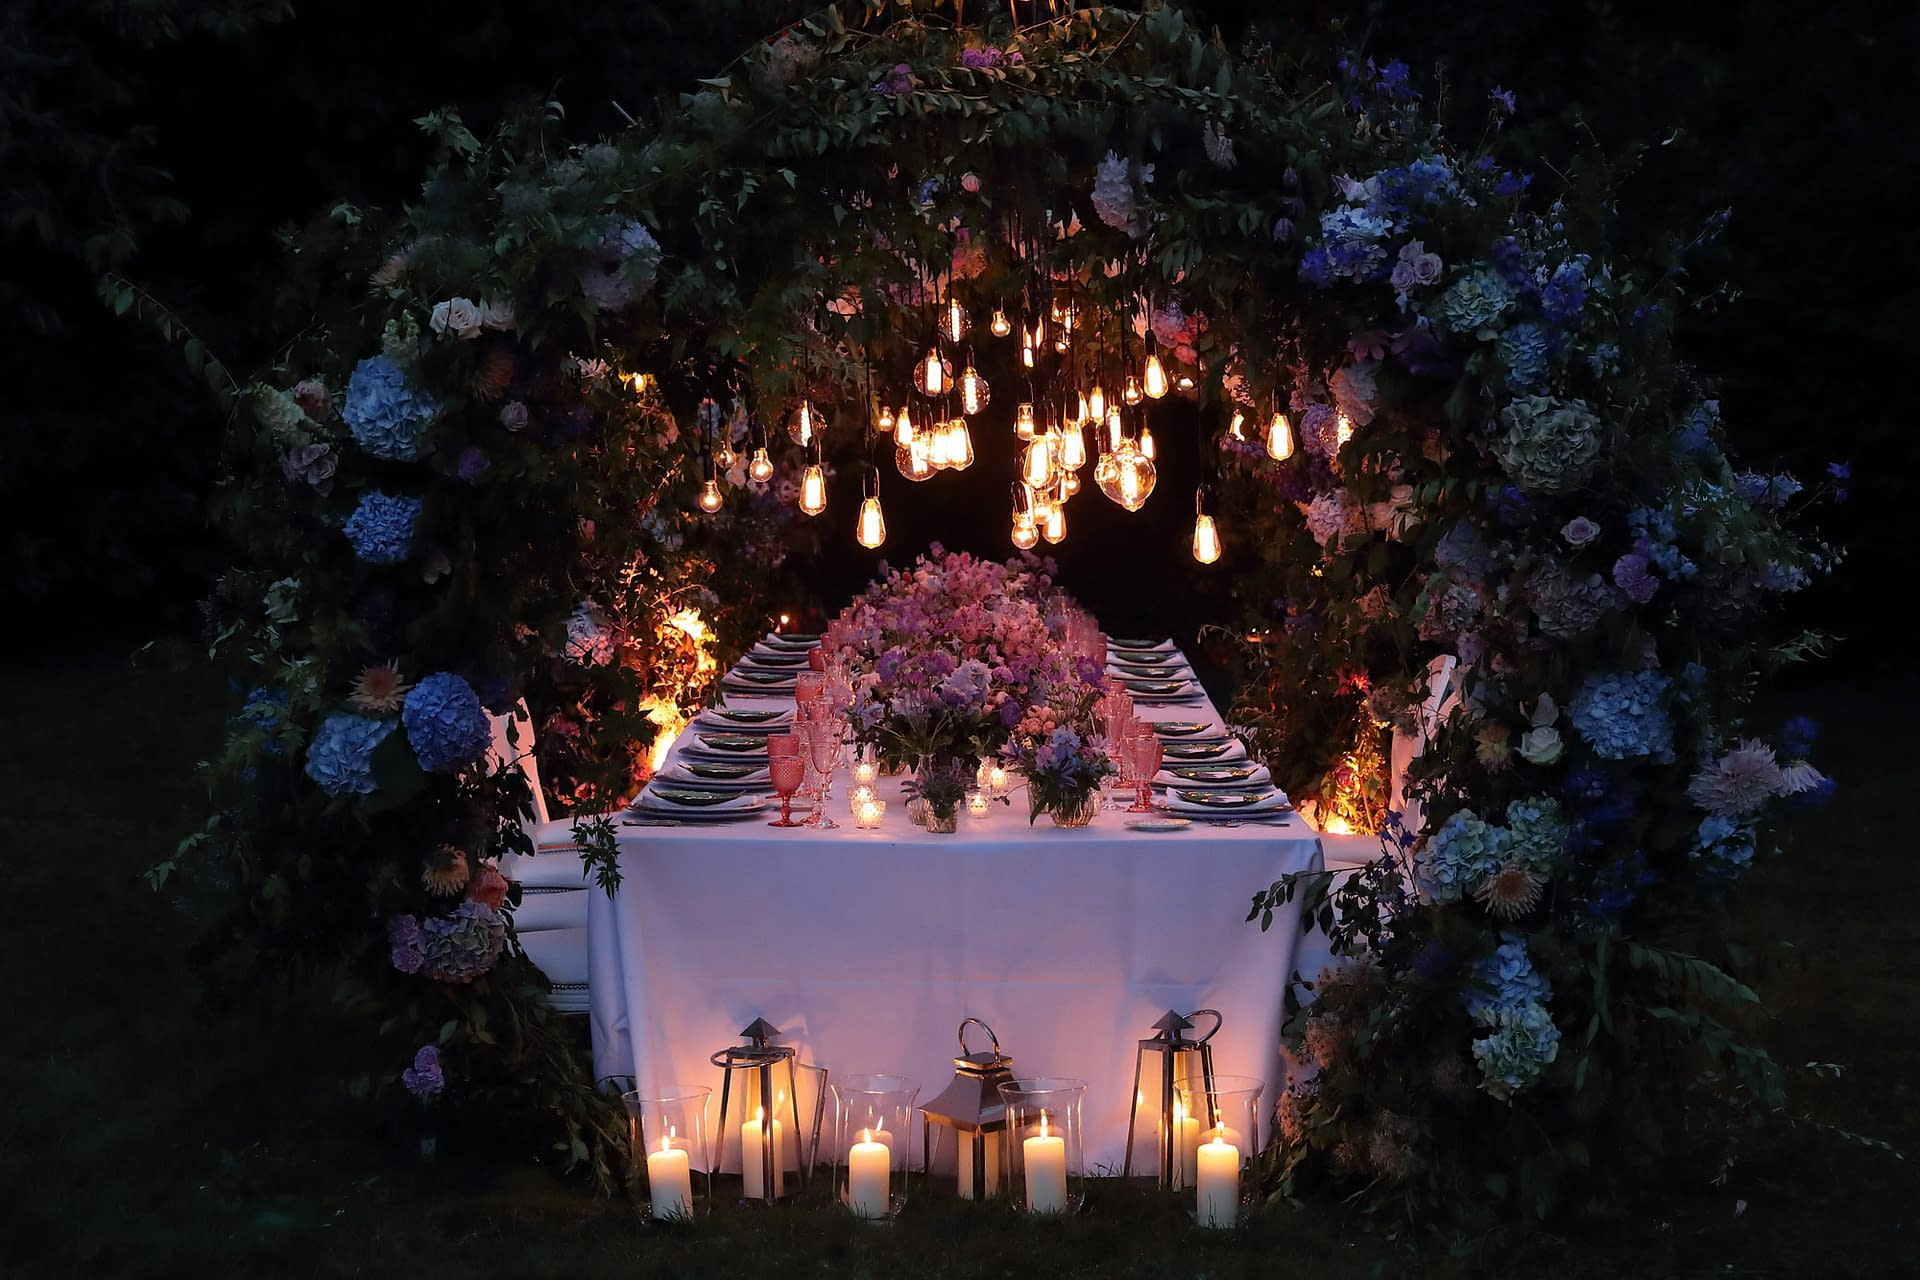 gorgeous candlelit and filament bulb installation for a secret garden party wedding styling